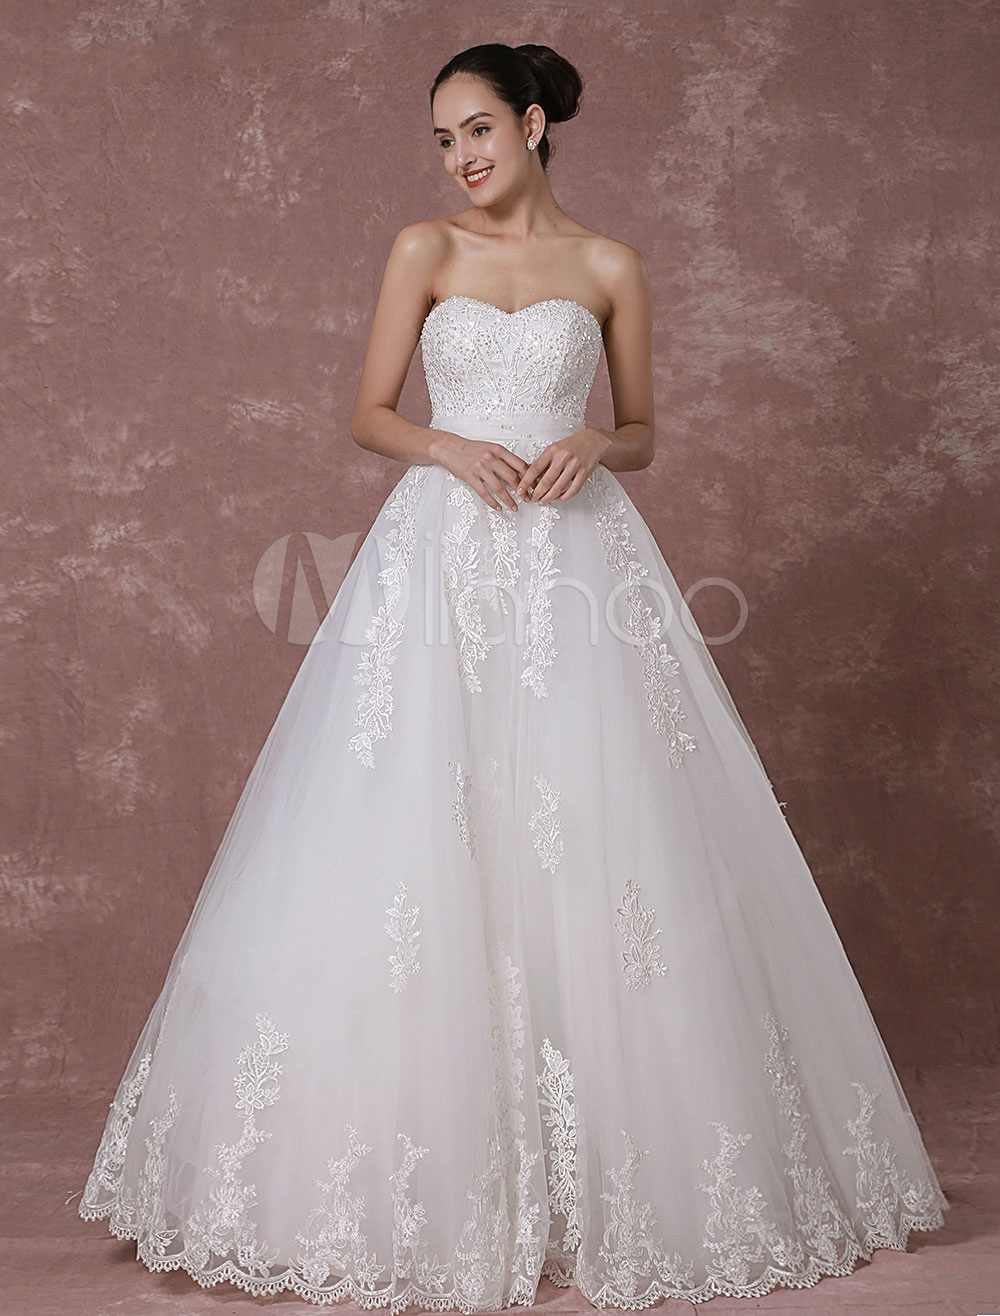 Lace Wedding Dress Sweetheart Strapless Backless Bridal Gown A-line Beading Luxury Bridal Dress